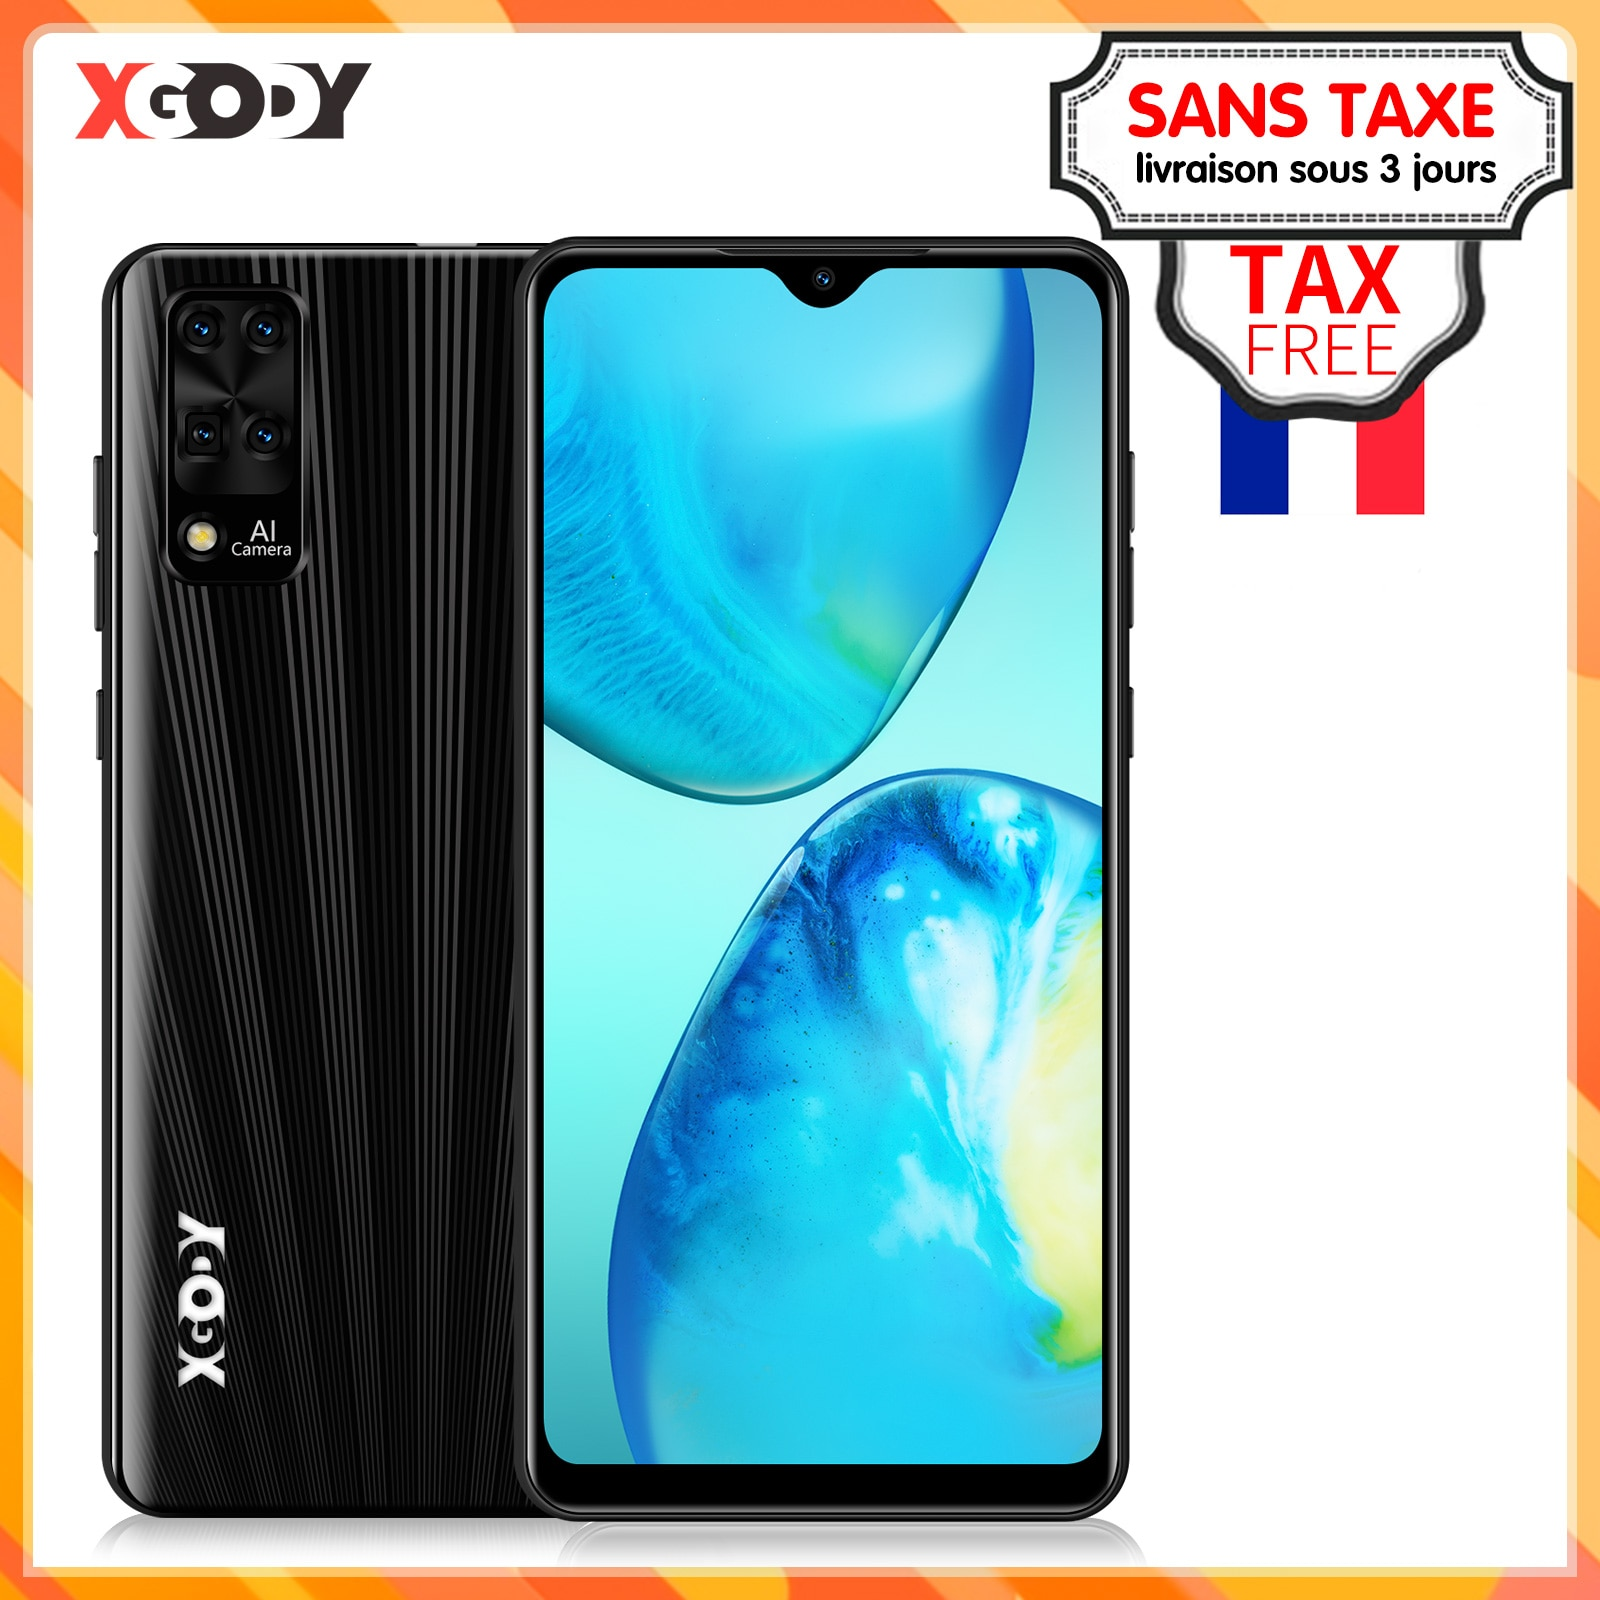 Global XGODY Smartphone 3G Android 9.0 6.3 Inch Quad Core Unlocked Face ID Mobile phone RAM 2GB ROM 16GB Celulares Cellphone